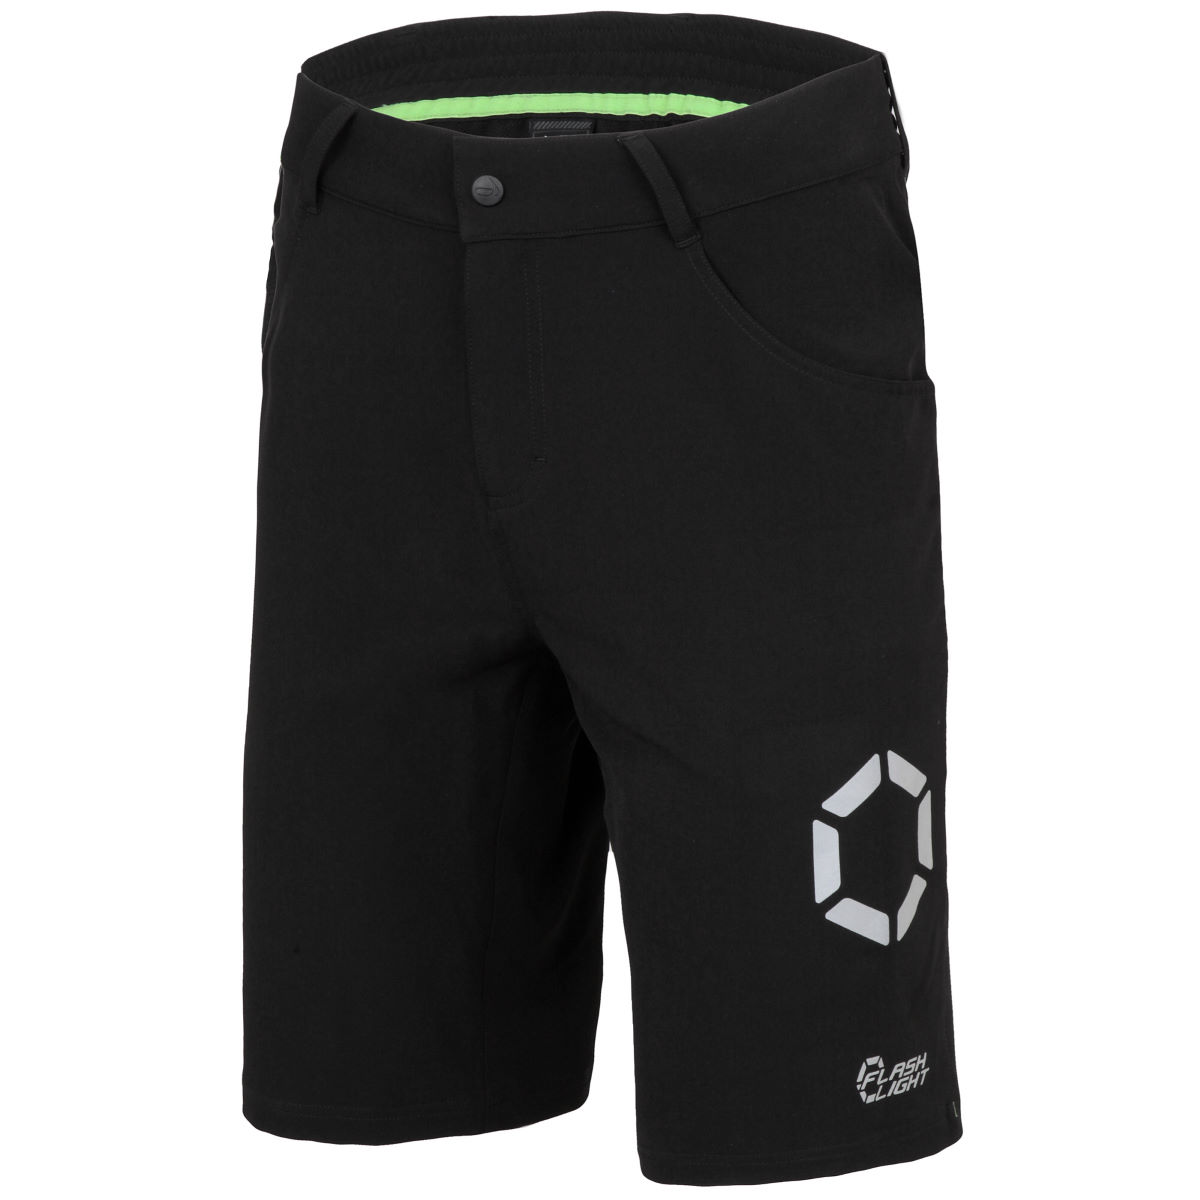 Short dhb Flashlight (baggy) - XL Noir Shorts VTT